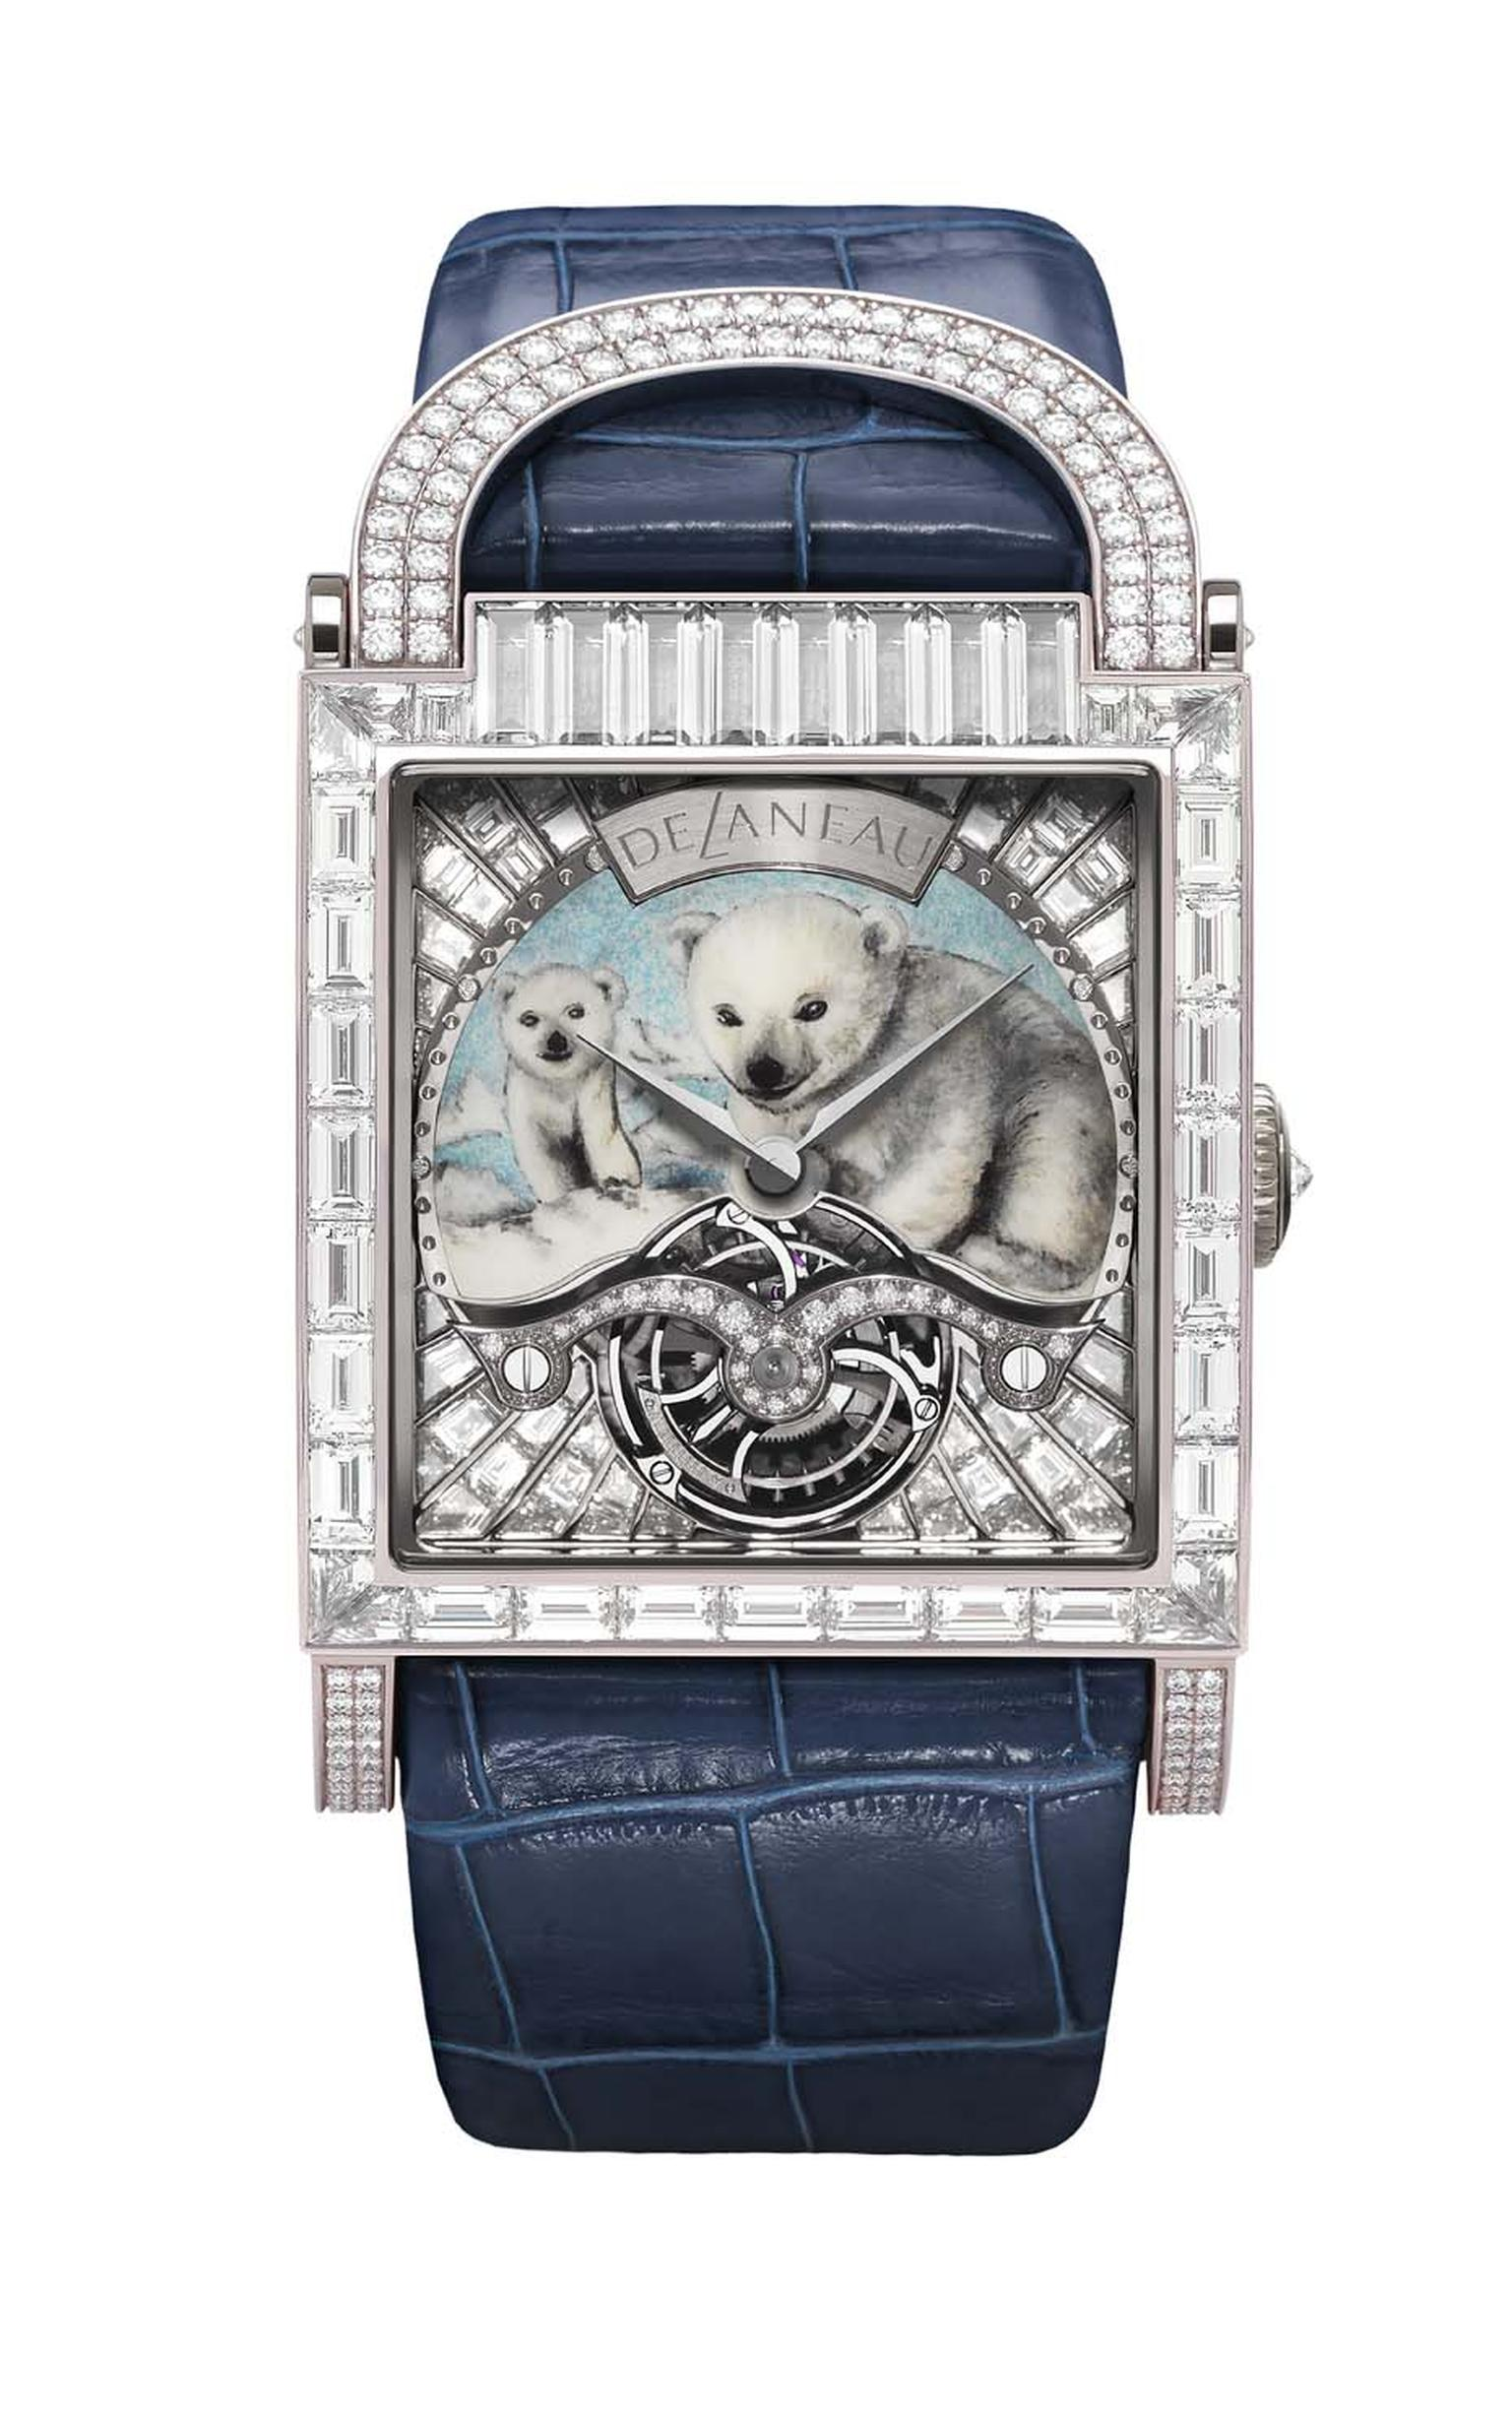 DeLaneau Dôme Tourbillon Tourbillon Polar Bear watch